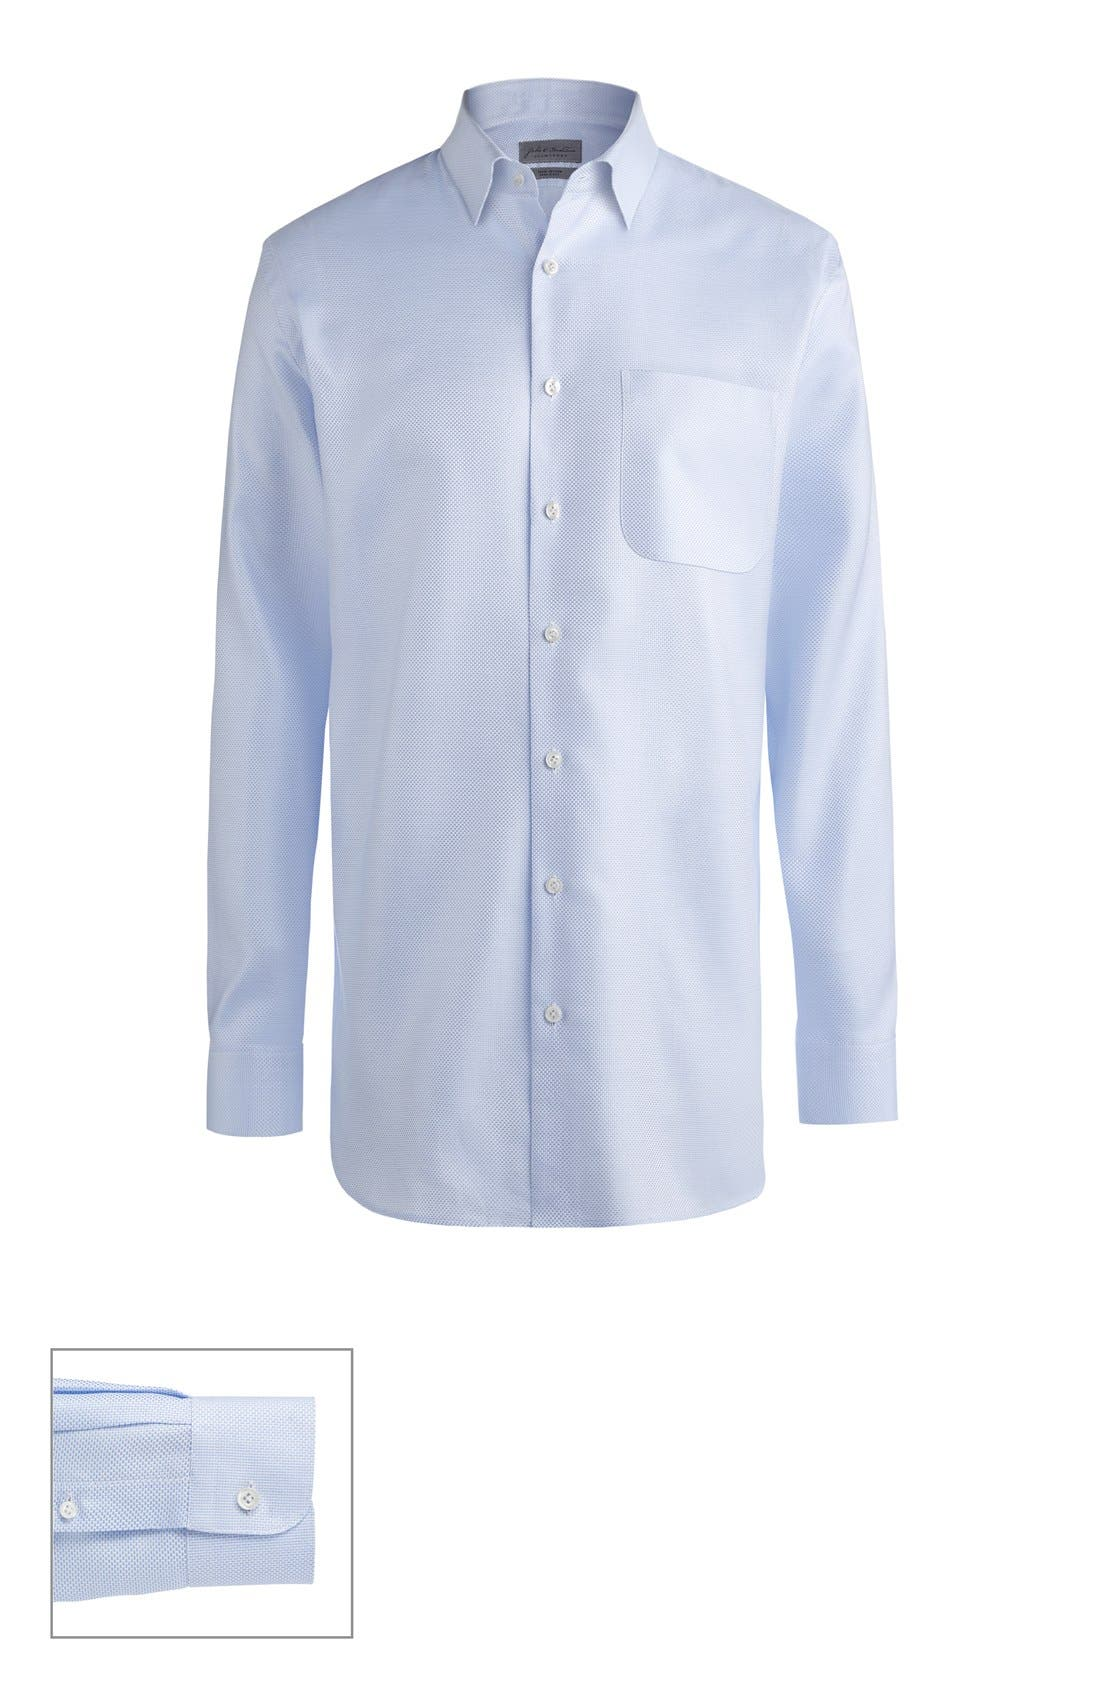 JOHN W. NORDSTROM<SUP>®</SUP>, Made to Measure Extra Trim Fit Straight Collar Dobby Dress Shirt, Main thumbnail 1, color, 400